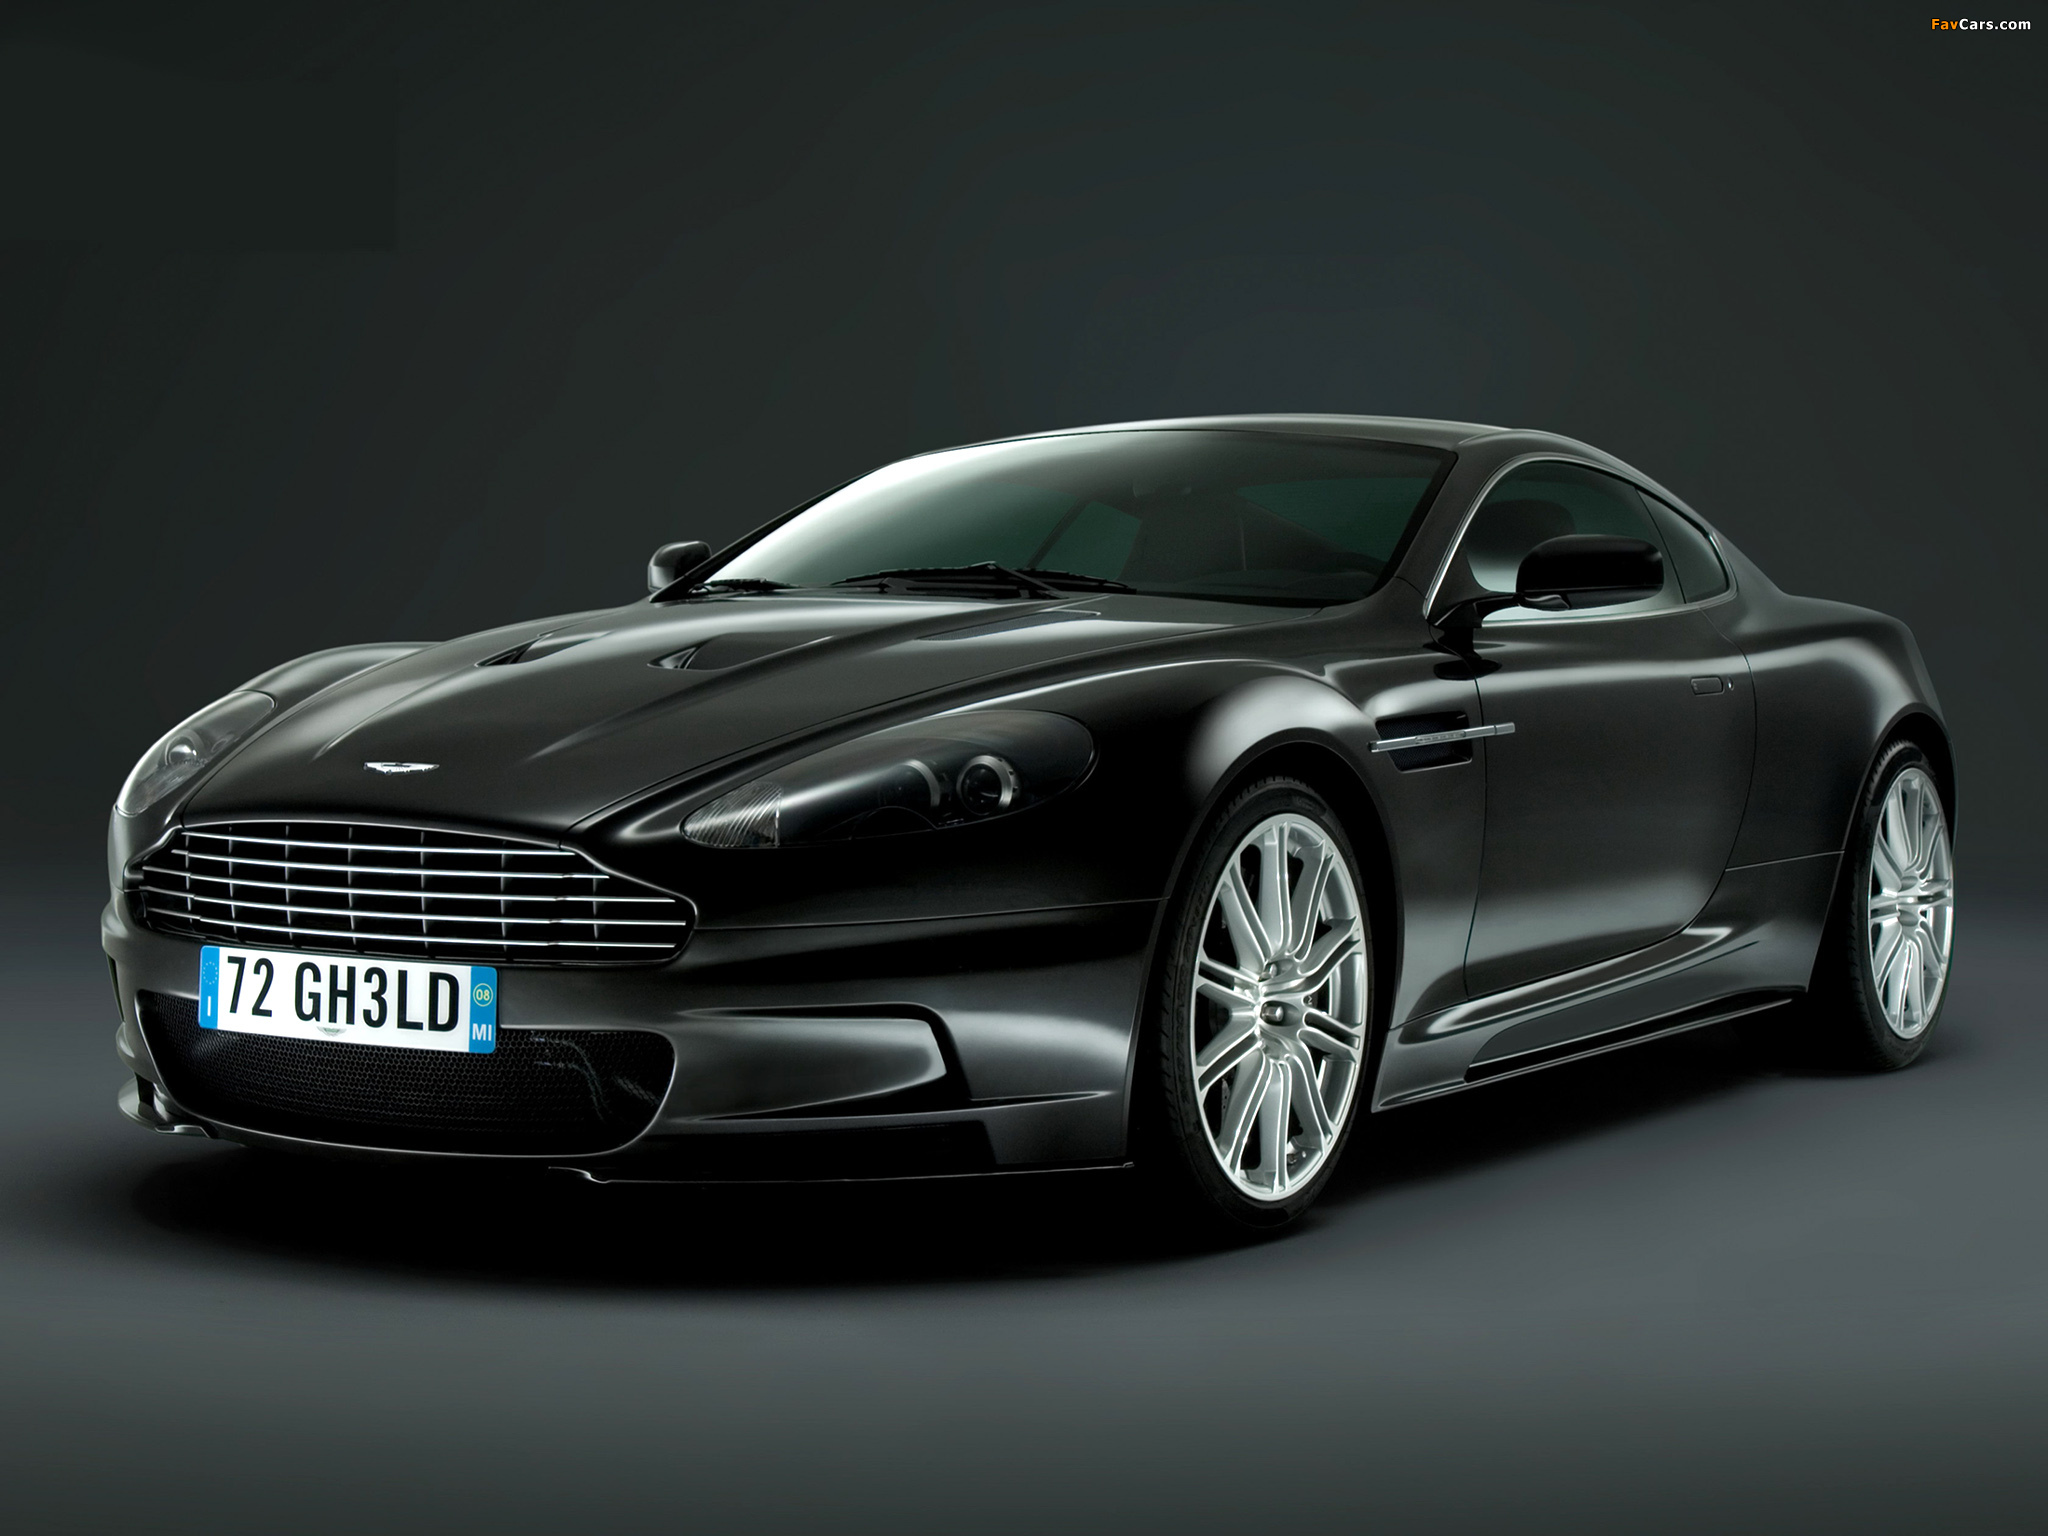 2008 Aston Martin Dbs 007 Quantum Of Solace Wallpapers Supercars Net